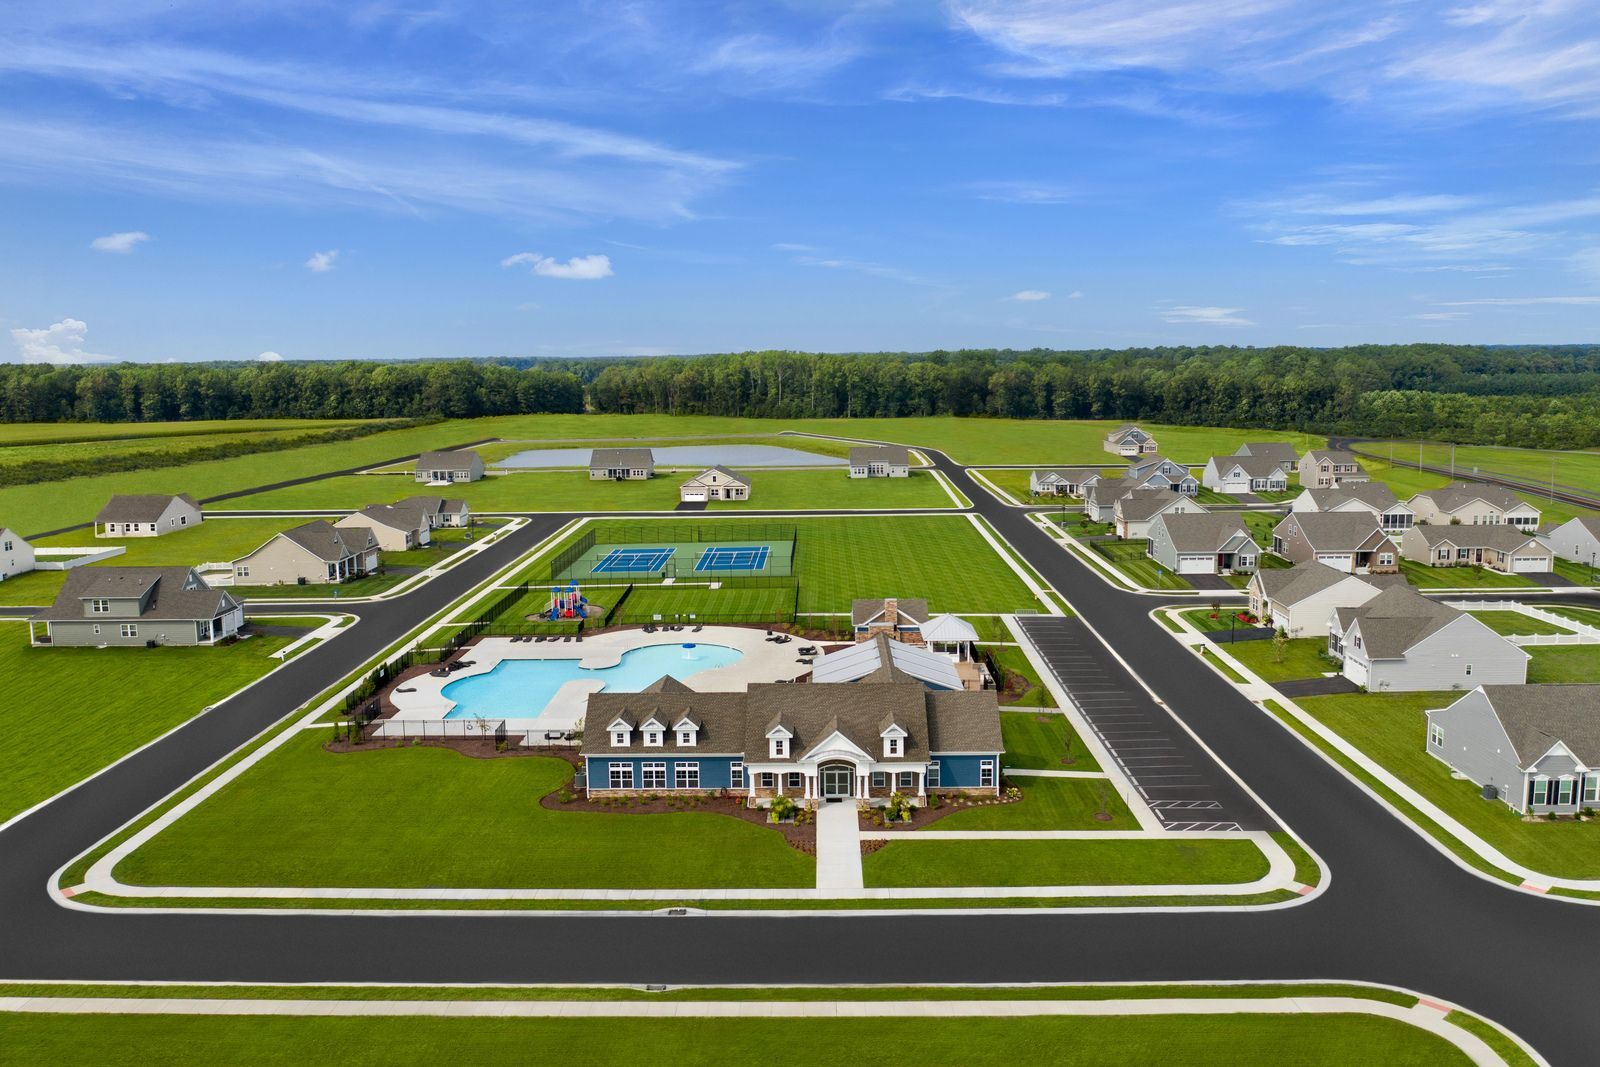 BEST VALUE RESORT-STYLE COMMUNITY IN SUSSEX COUNTY!:Lowest priced single-family homes located in an established community offering resort style amenities just 7 miles to Lewes.